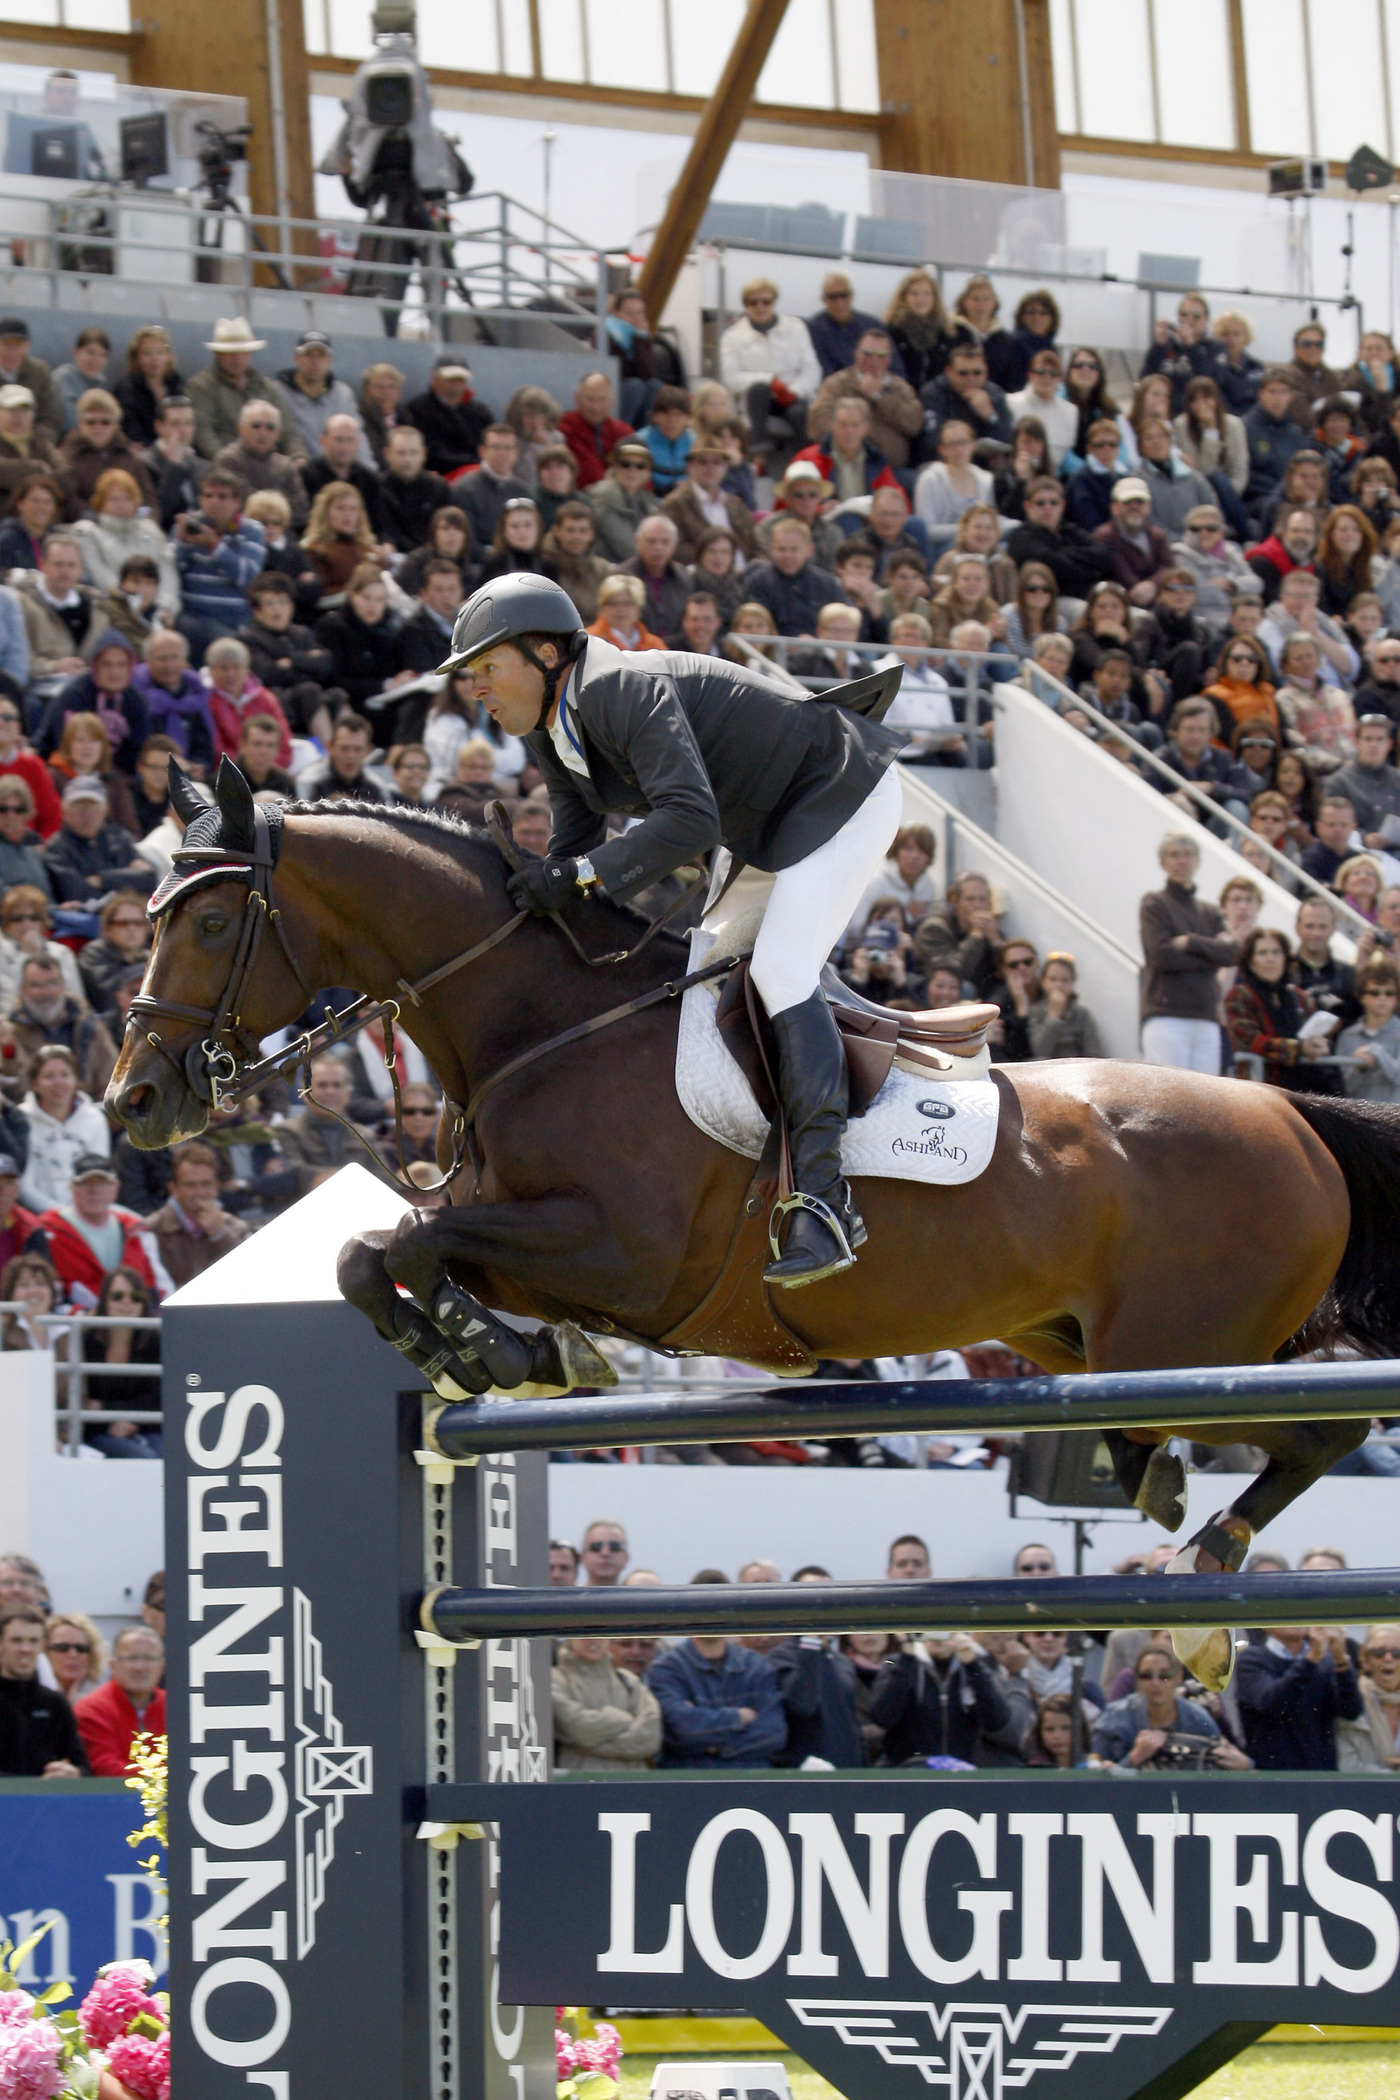 Longines Show Jumping Event: The Jumping International Officiel de France in La Baule 1